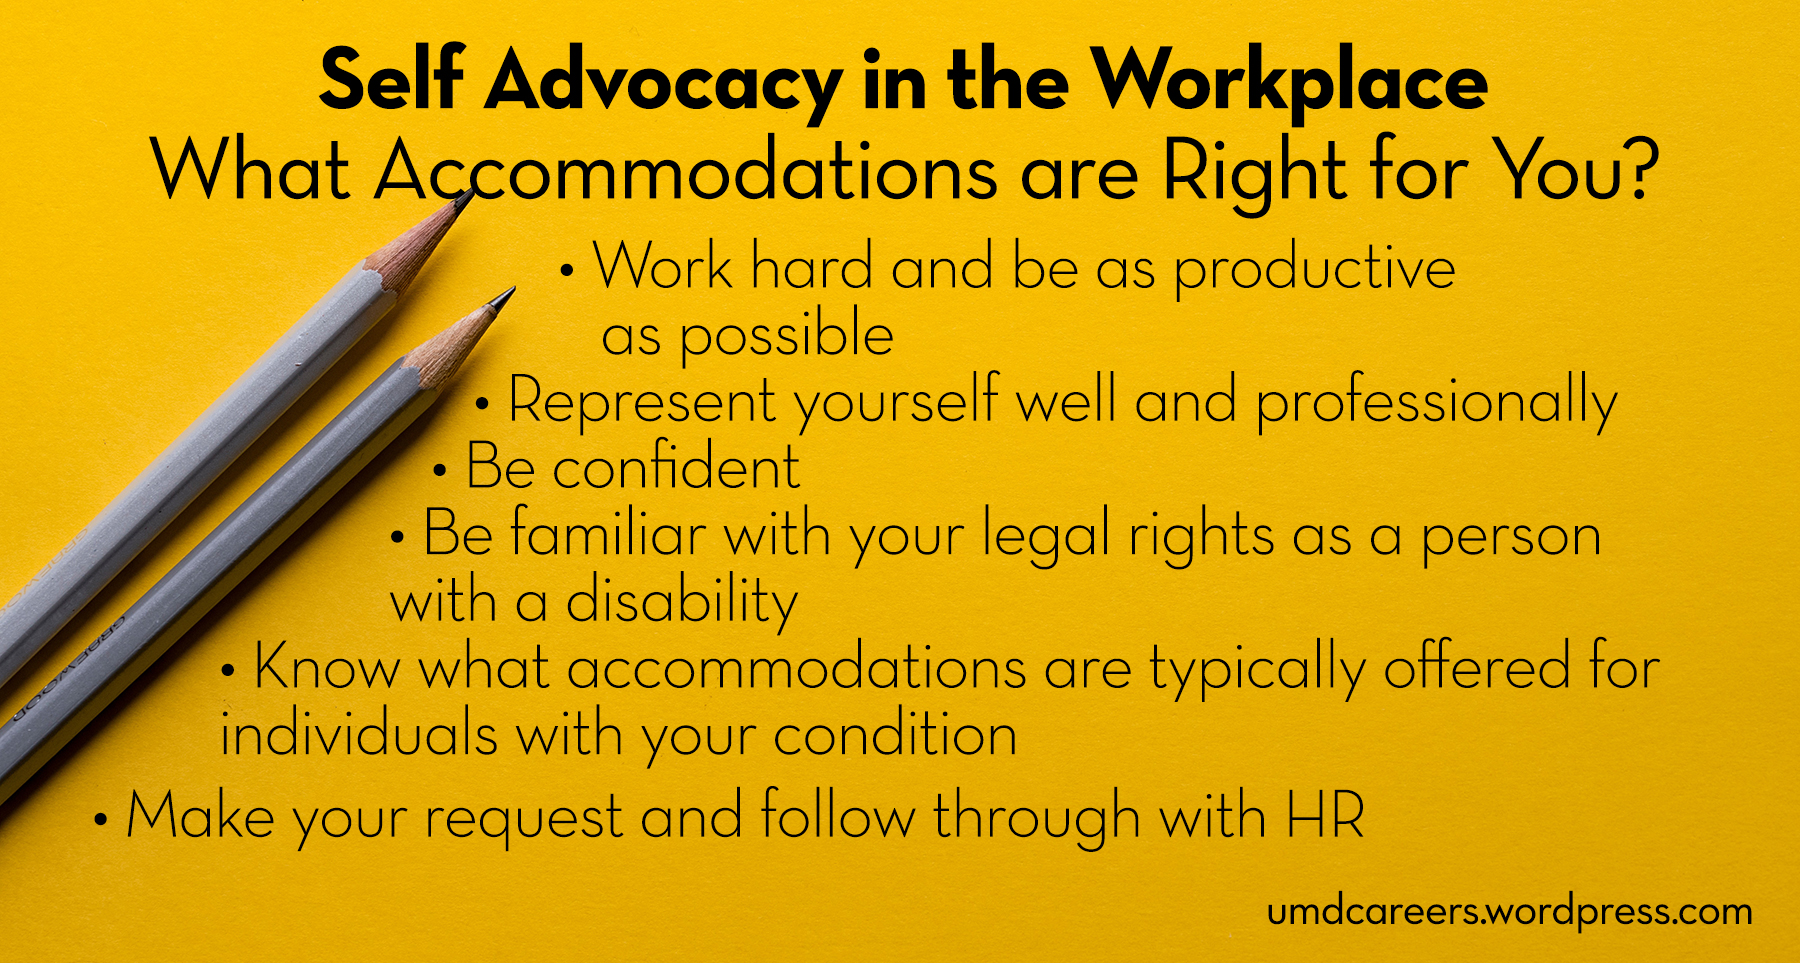 Self Advocacy in the Workplace – Peer Into Your Career